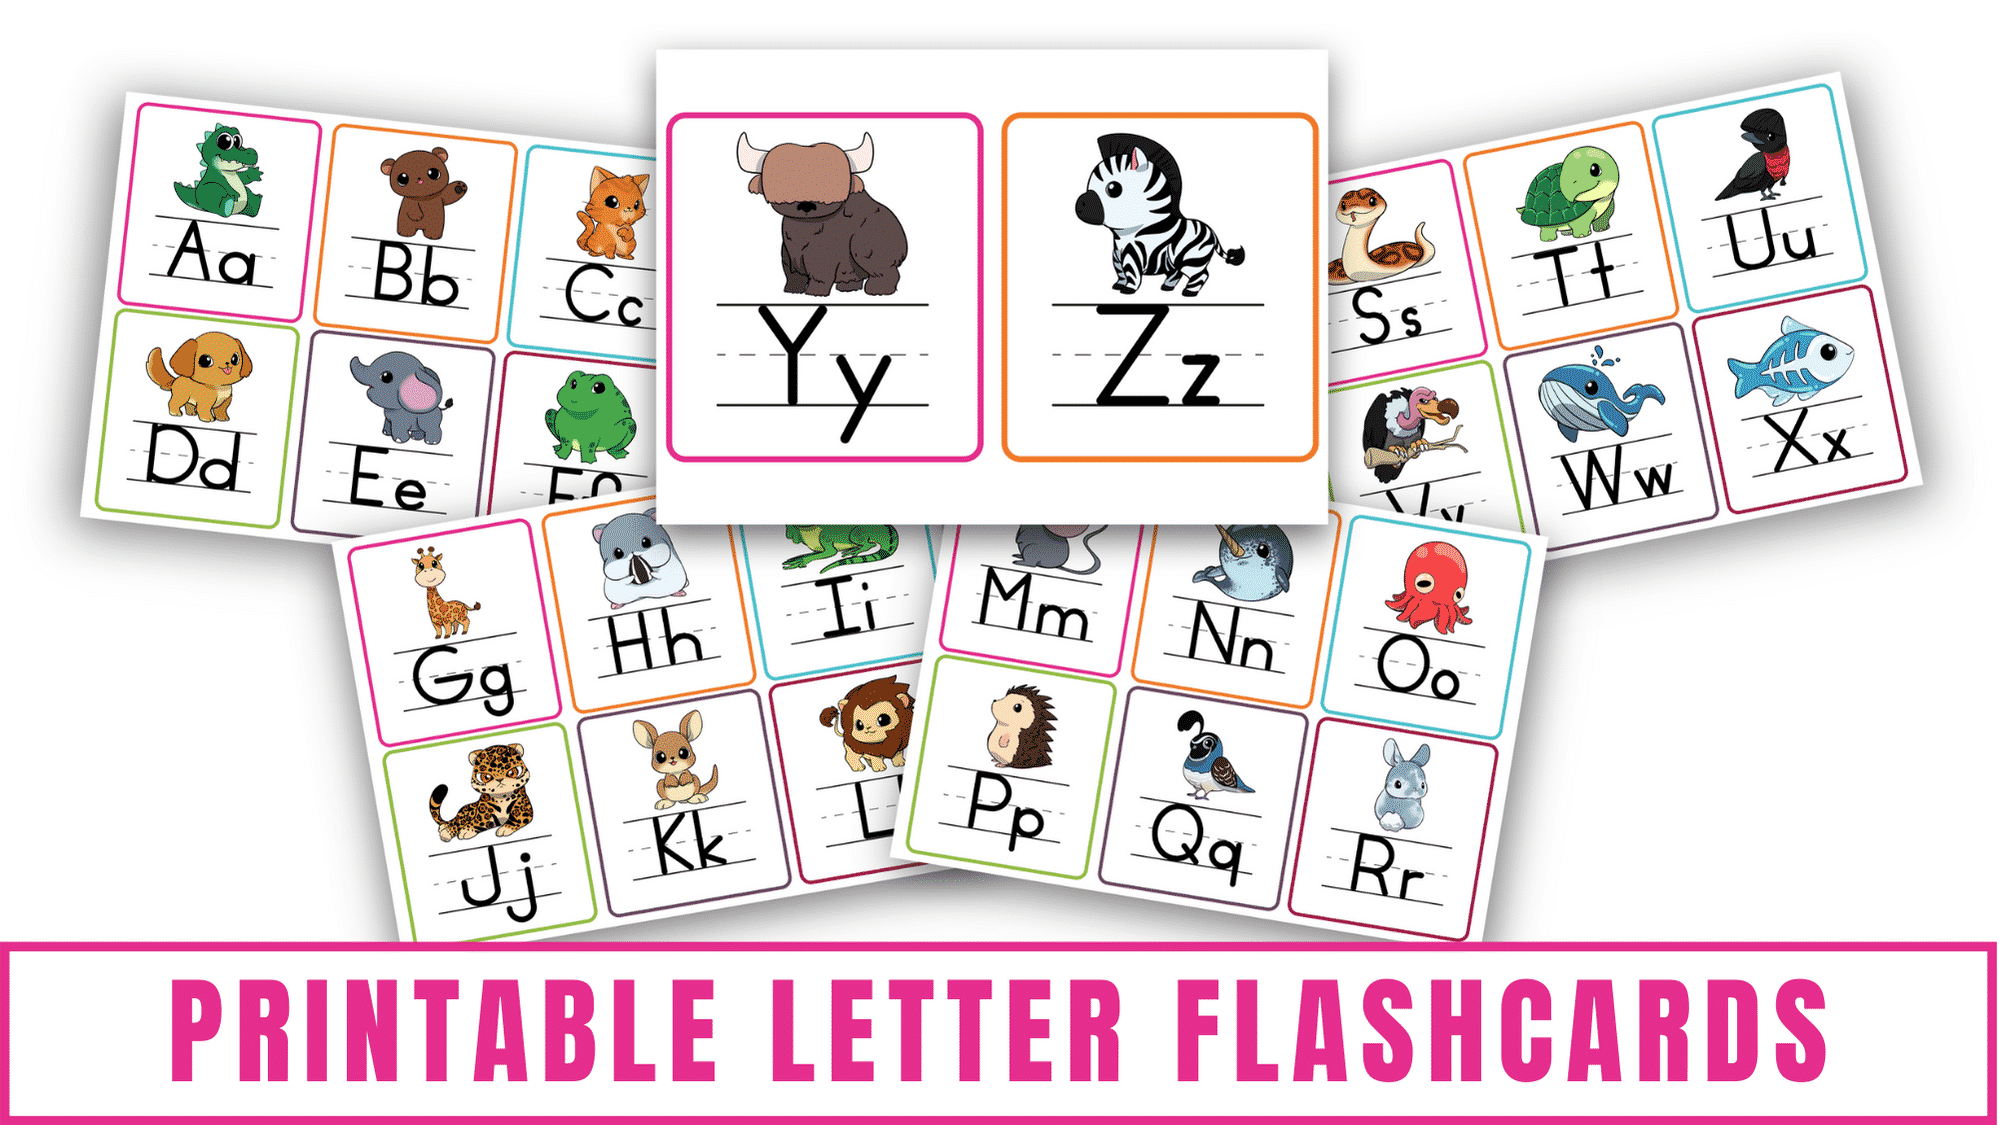 These printable letter flashcards pdf downloads are a highly effective way to teach kids letter recognition of uppercase and lowercase alphabet letters, letter sounds, and words that start with letters of the alphabet.